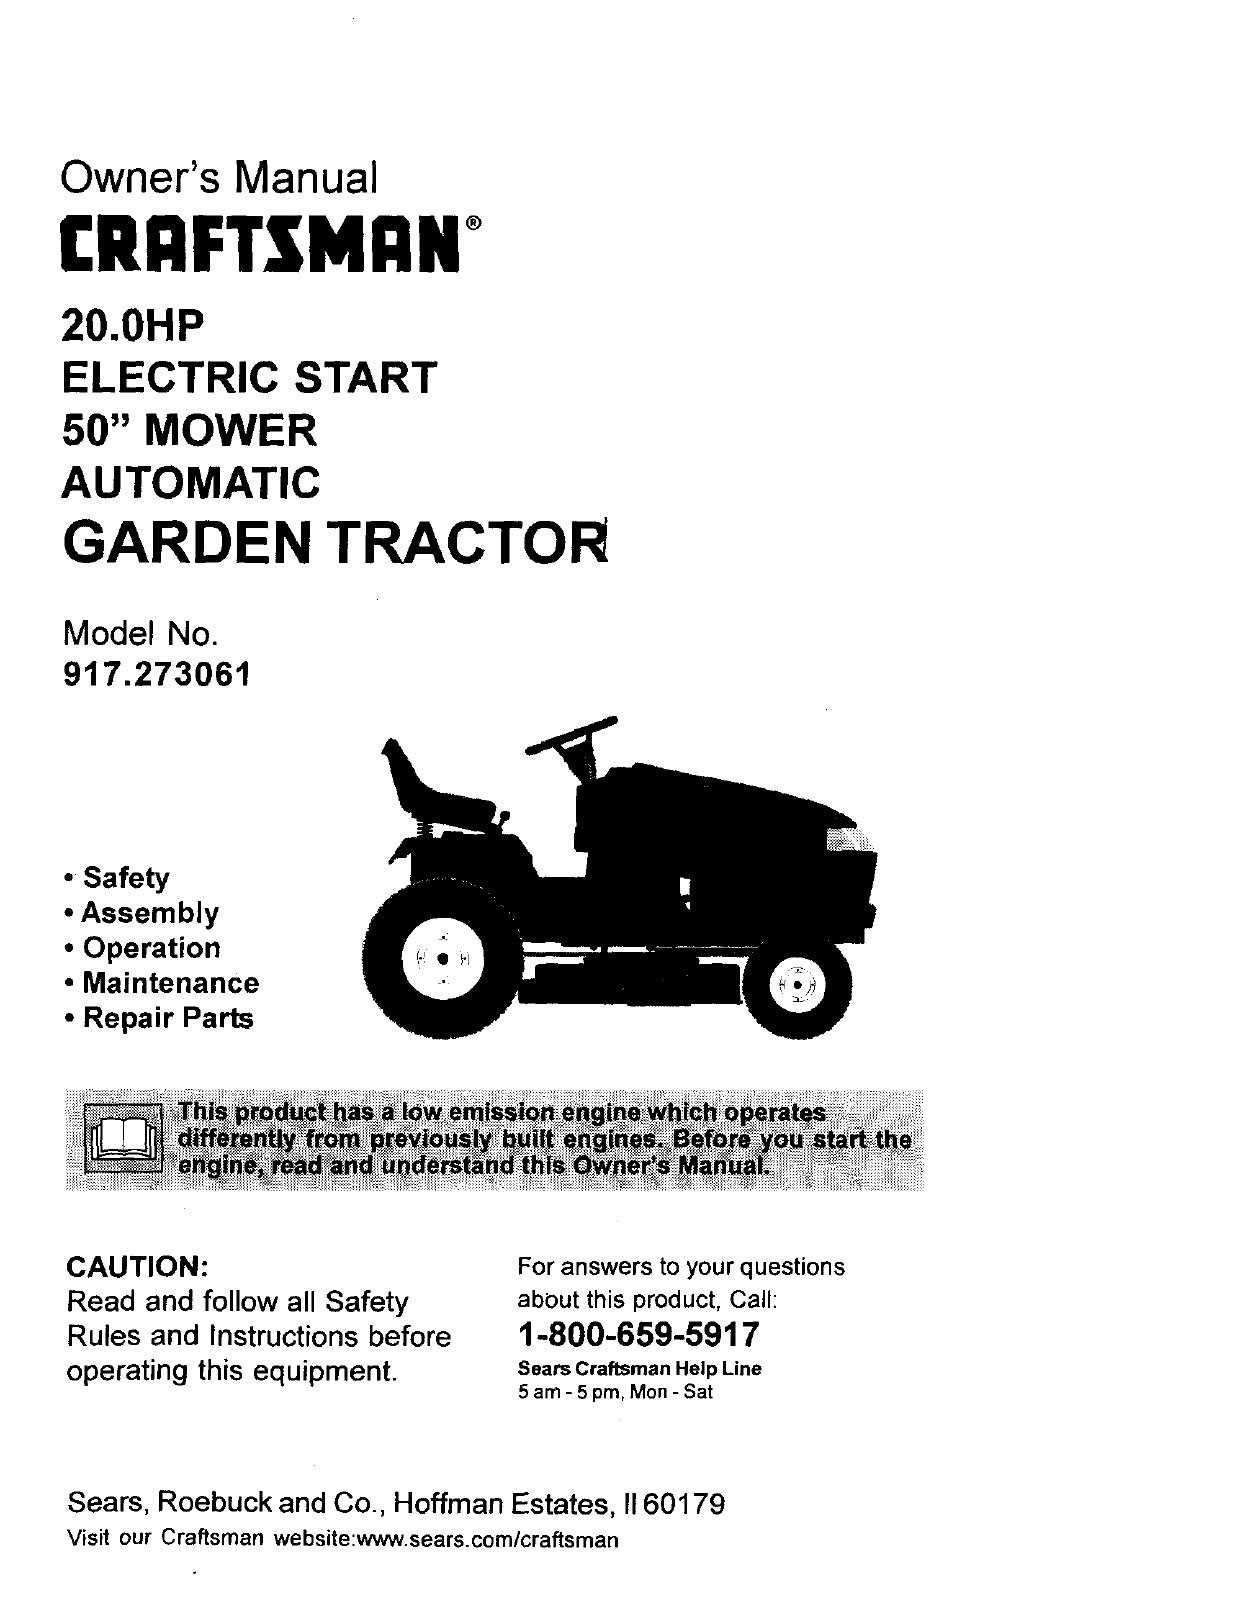 Craftsman 917273061 User Manual Garden Tractor Manuals And Guides Sears Suburban 15 Wiring Diagram L9910387